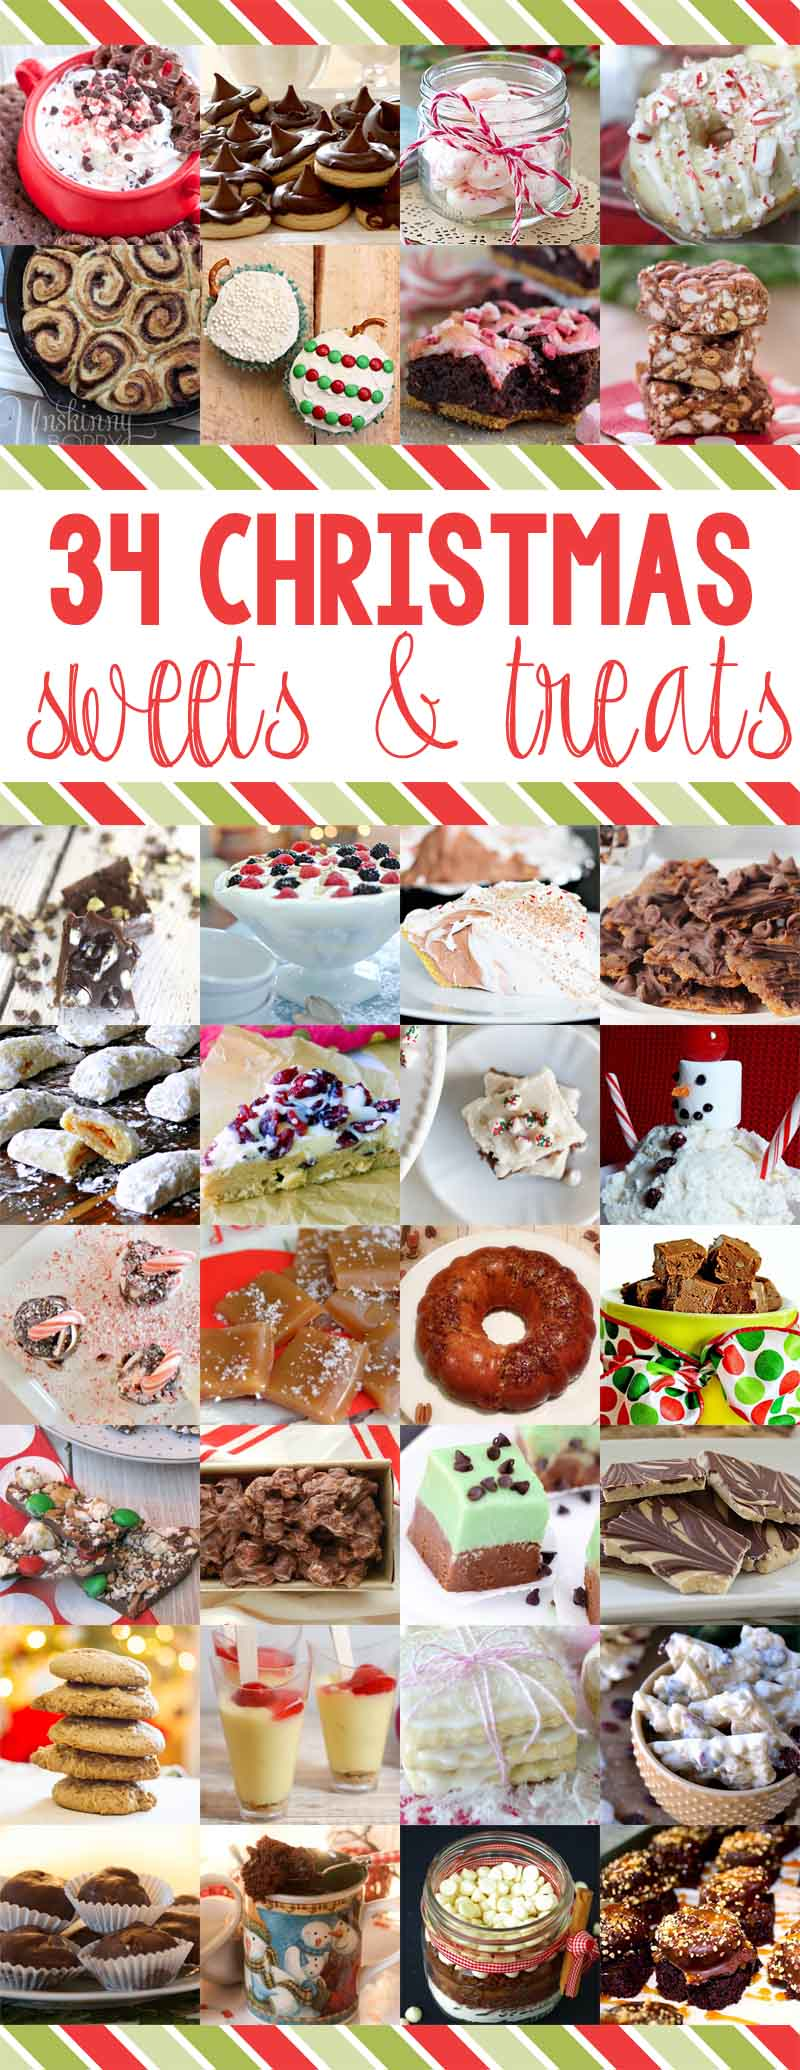 34 Amazing Christmas Dessert Treats You Can Make This Holiday Season